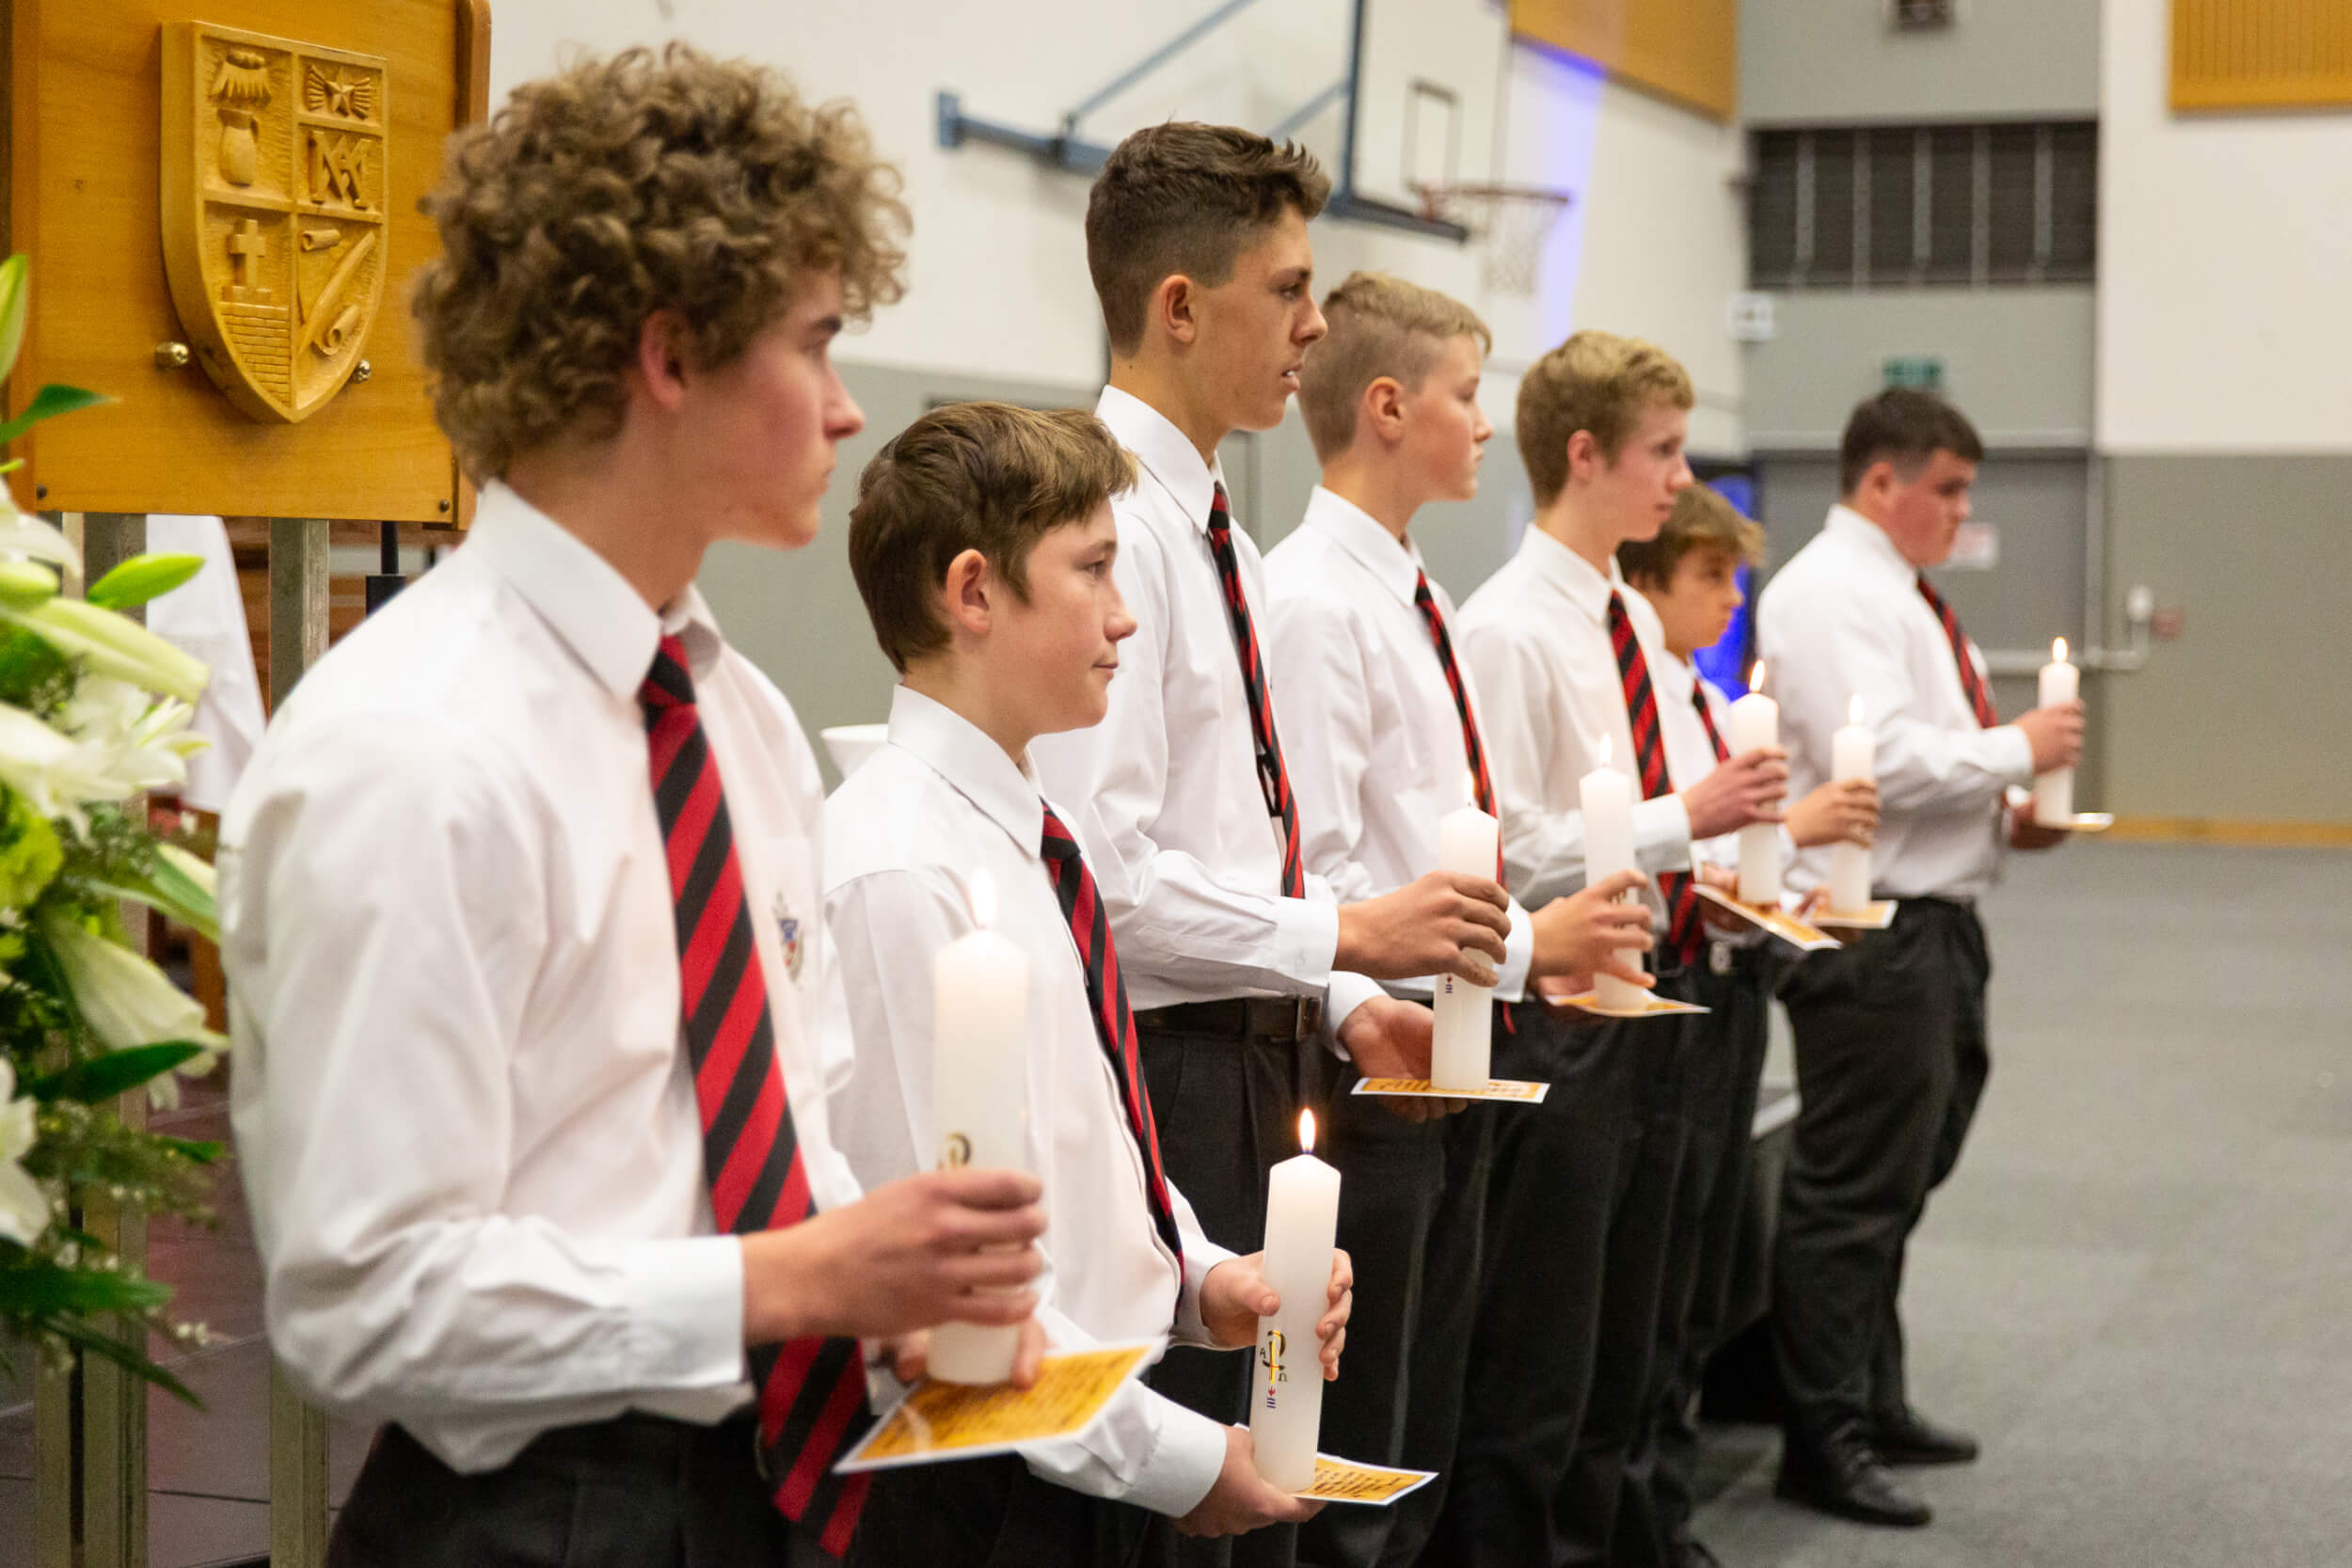 St Bede's College mass